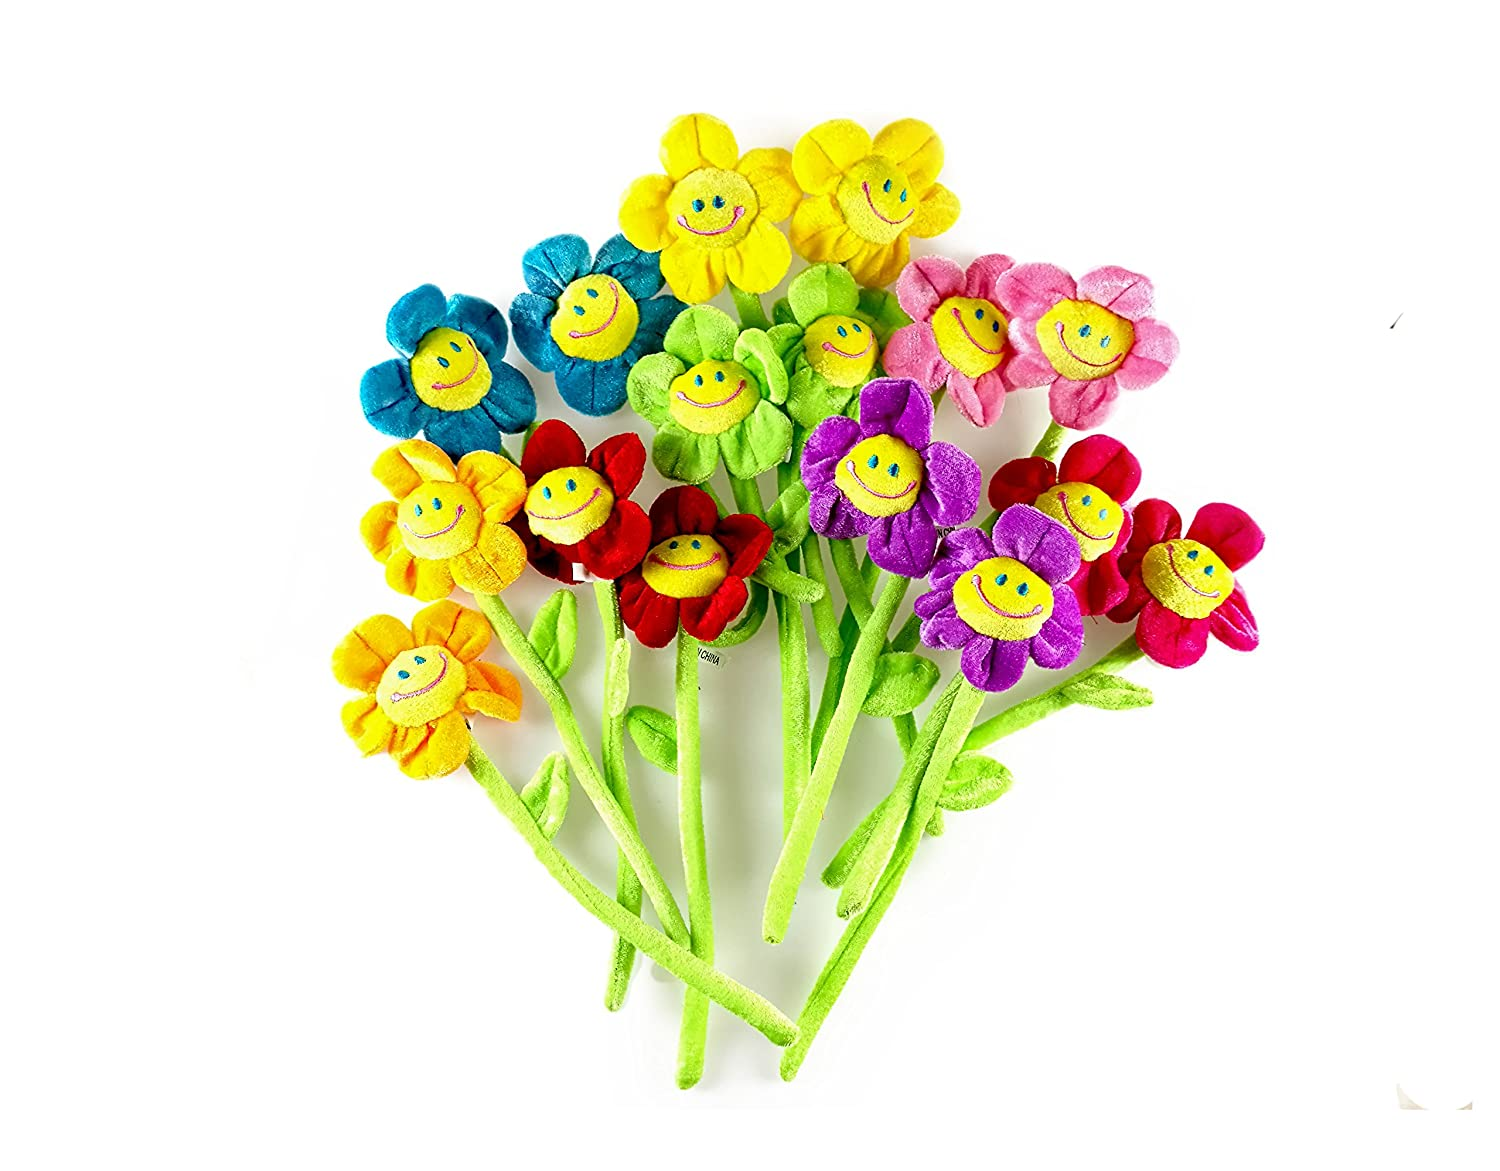 Amazon party zealot 16pcs daisy plush flowers smiley face 13 amazon party zealot 16pcs daisy plush flowers smiley face 13 inches long bendable stems 8 assorted colors happy smiles sunflowers gift for boys and izmirmasajfo